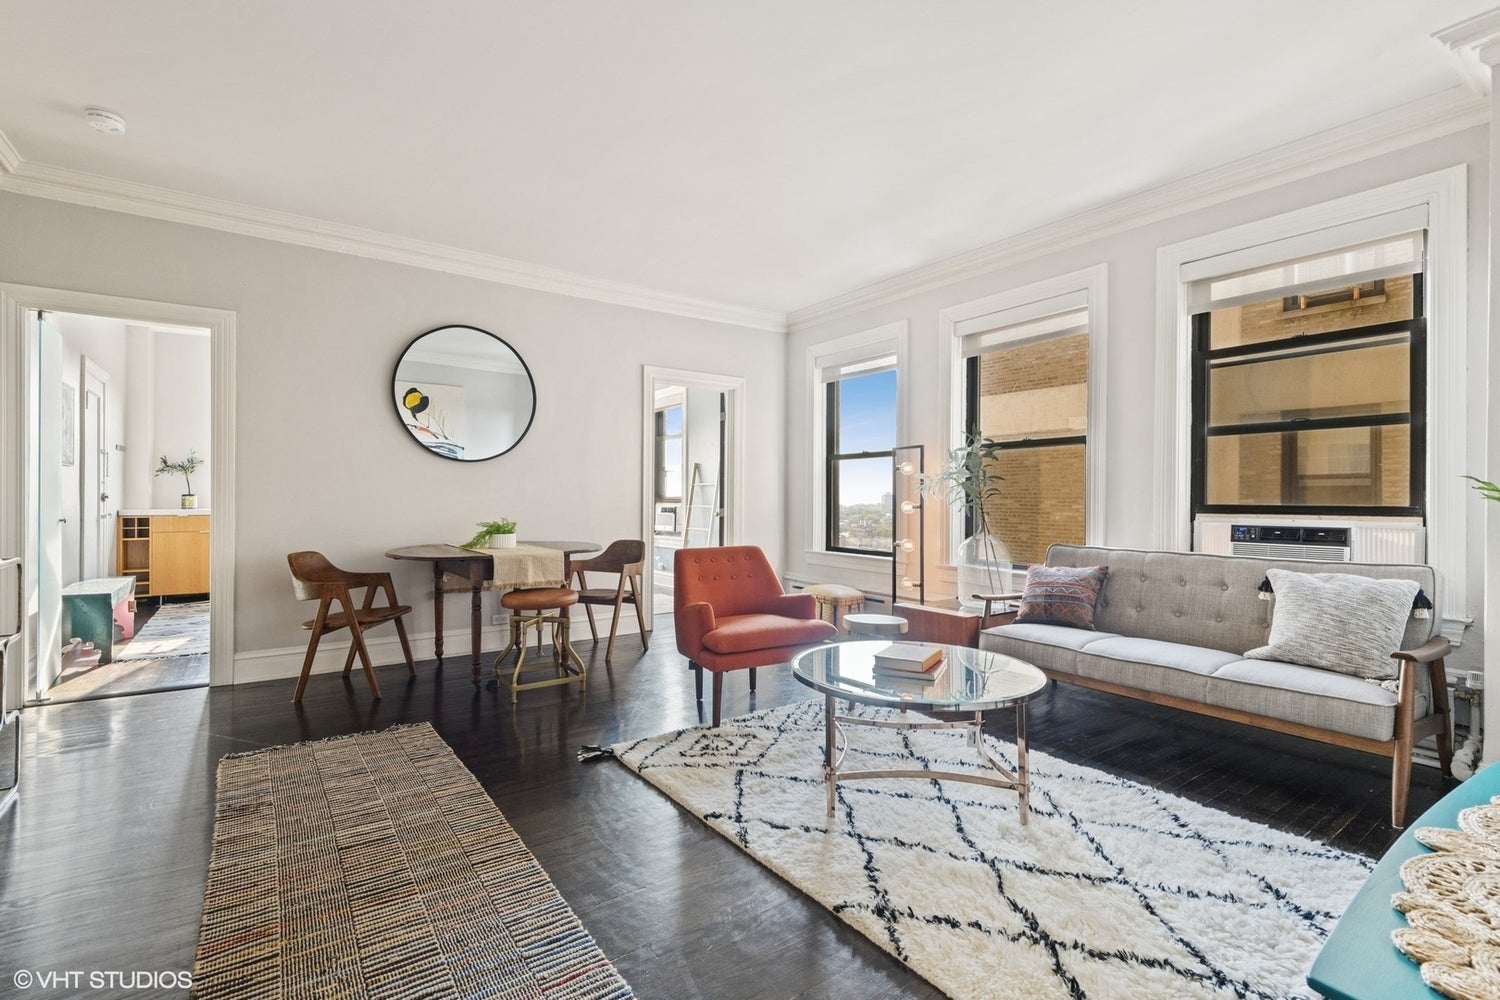 See Chicago lakefront apartments for sale and more from Eskell home staging Chicago.